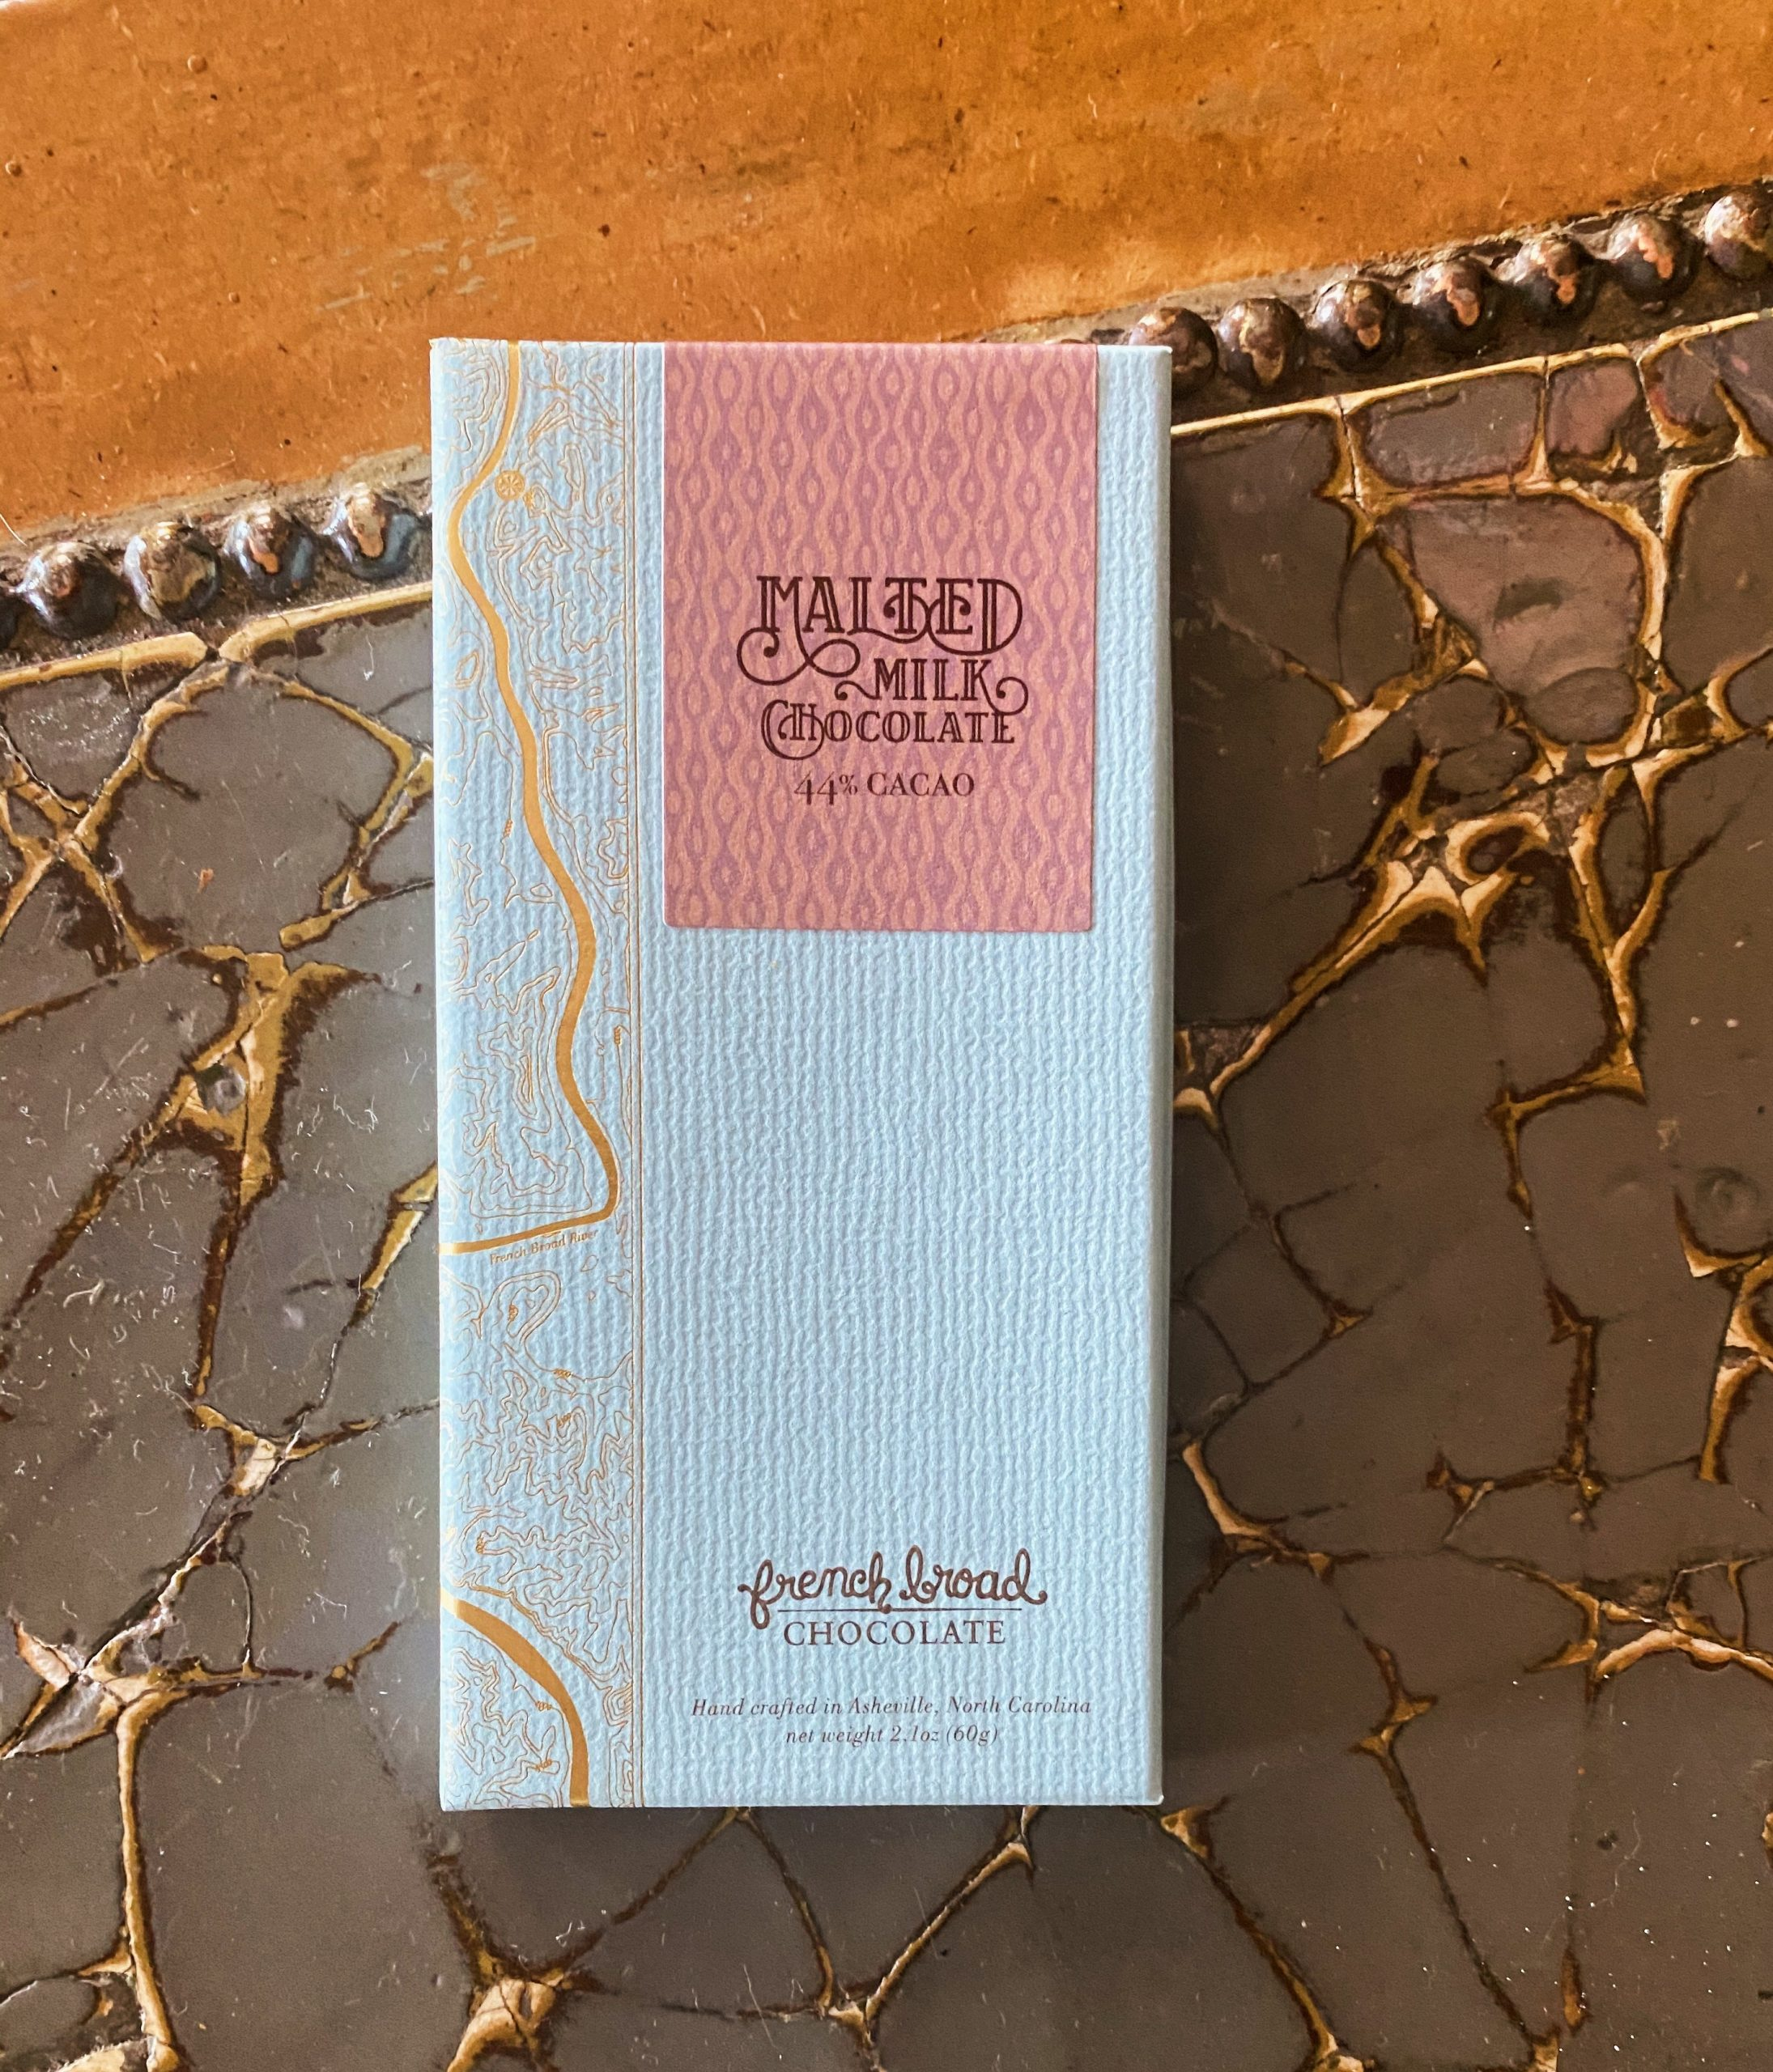 Marvelous Malted Milk Bar from French Broad Chocolate in Asheville